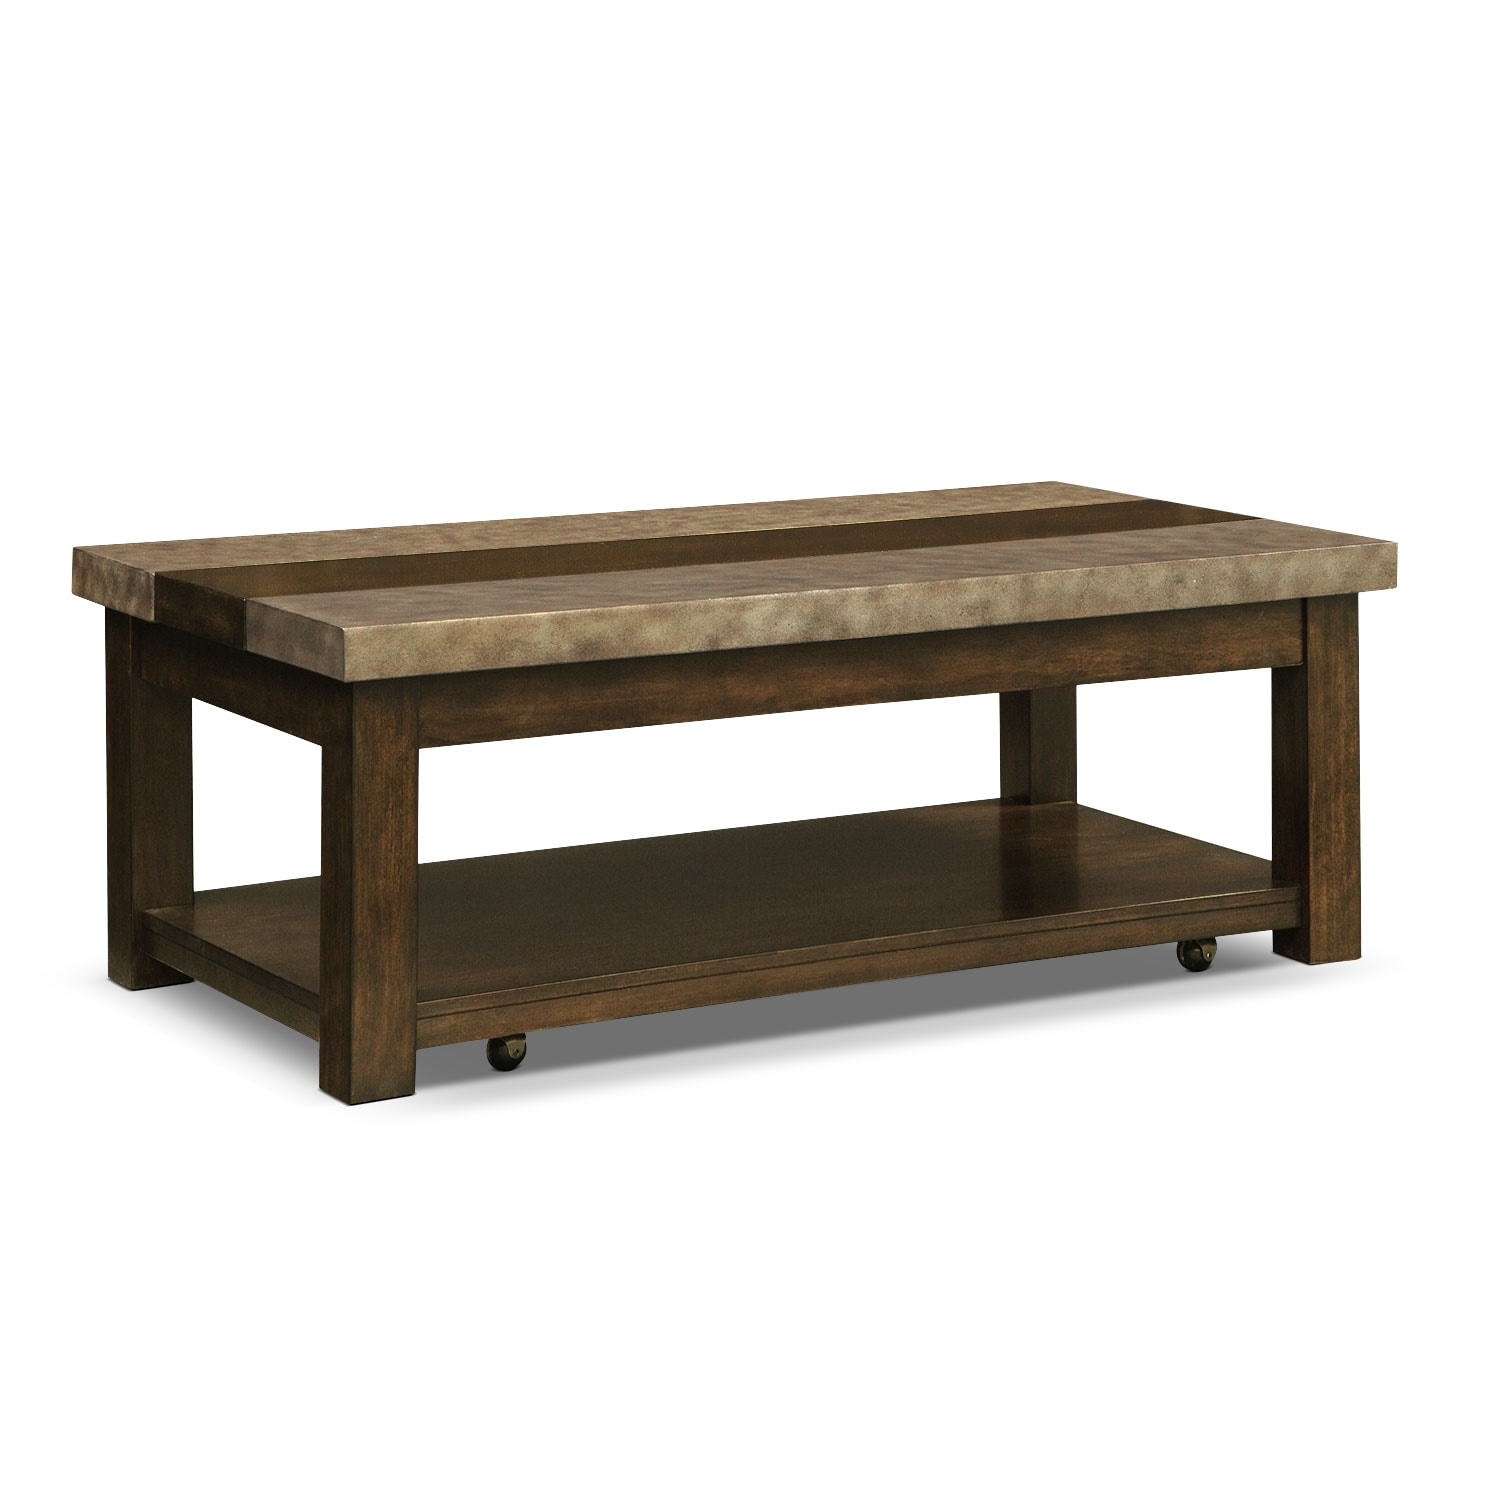 Accent and Occasional Furniture - Plano Lift-Top Cocktail Table